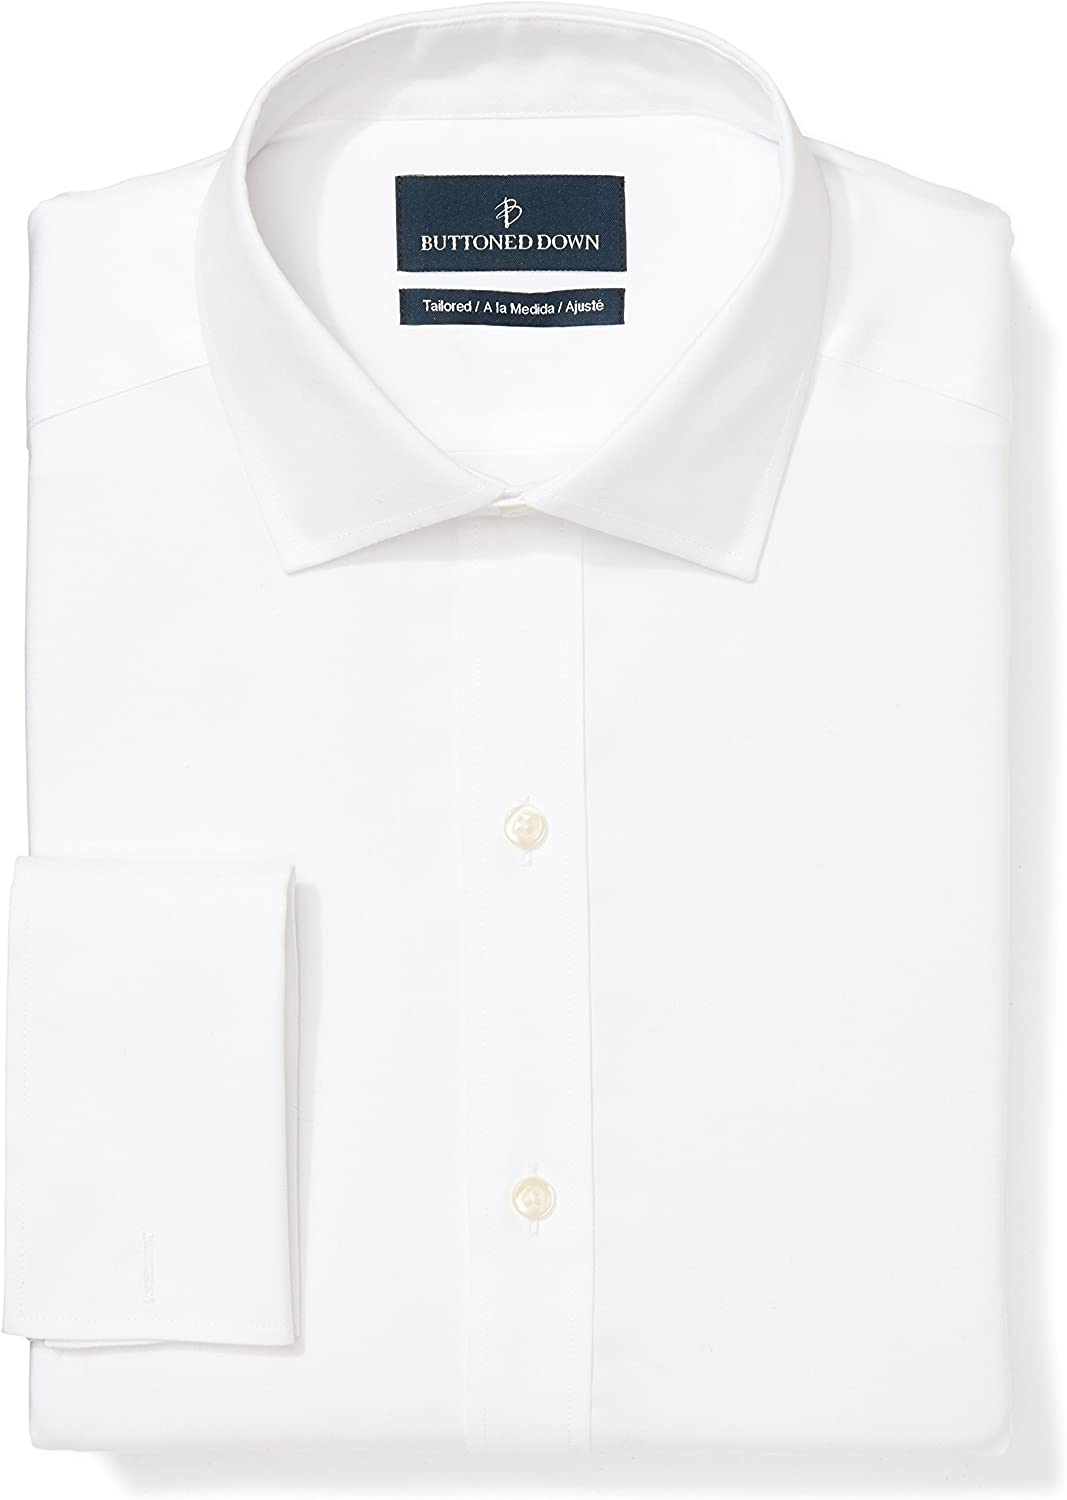 Amazon Brand - BUTTONED DOWN Men's Tailored Fit French Cuff Dress Shirt, Supima Cotton Non-Iron, Spread-Collar